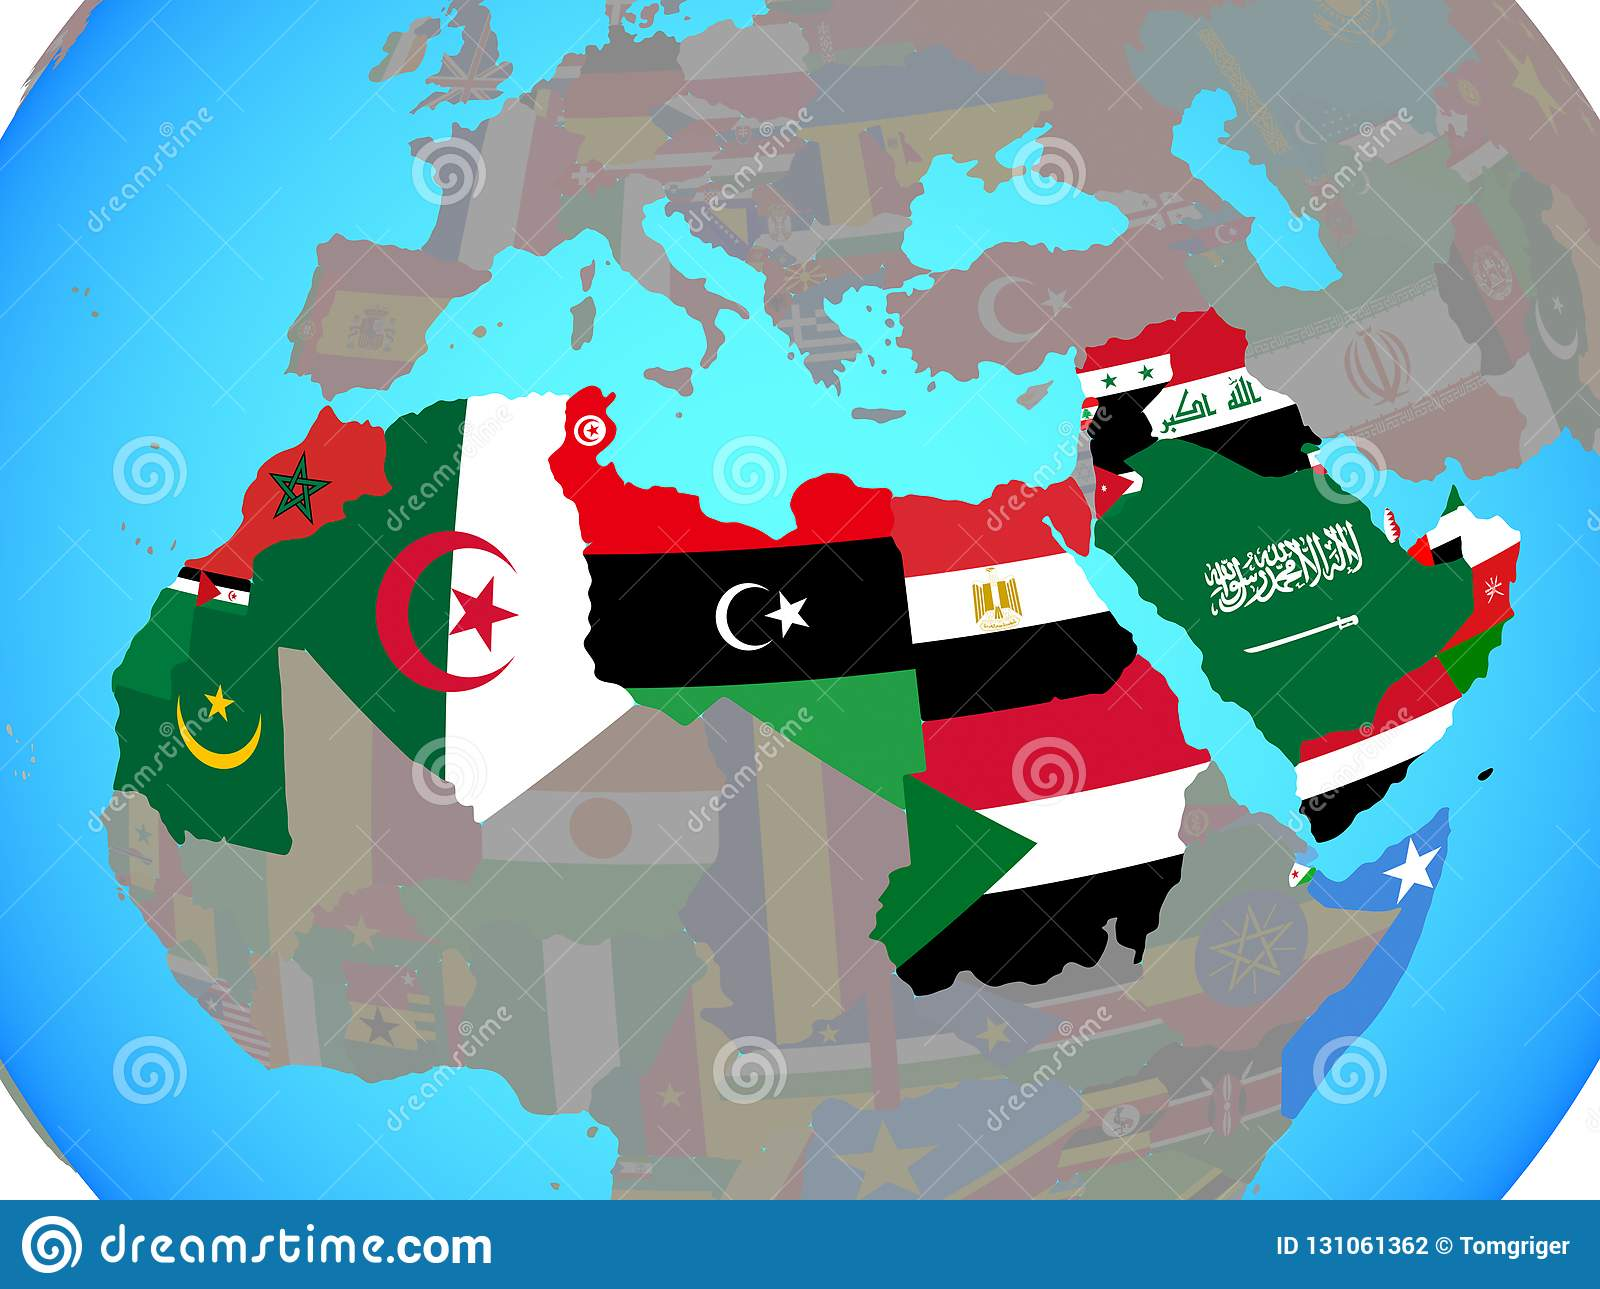 Picture of: Arab League With Flags On Map Stock Illustration Illustration Of Political National 131061362